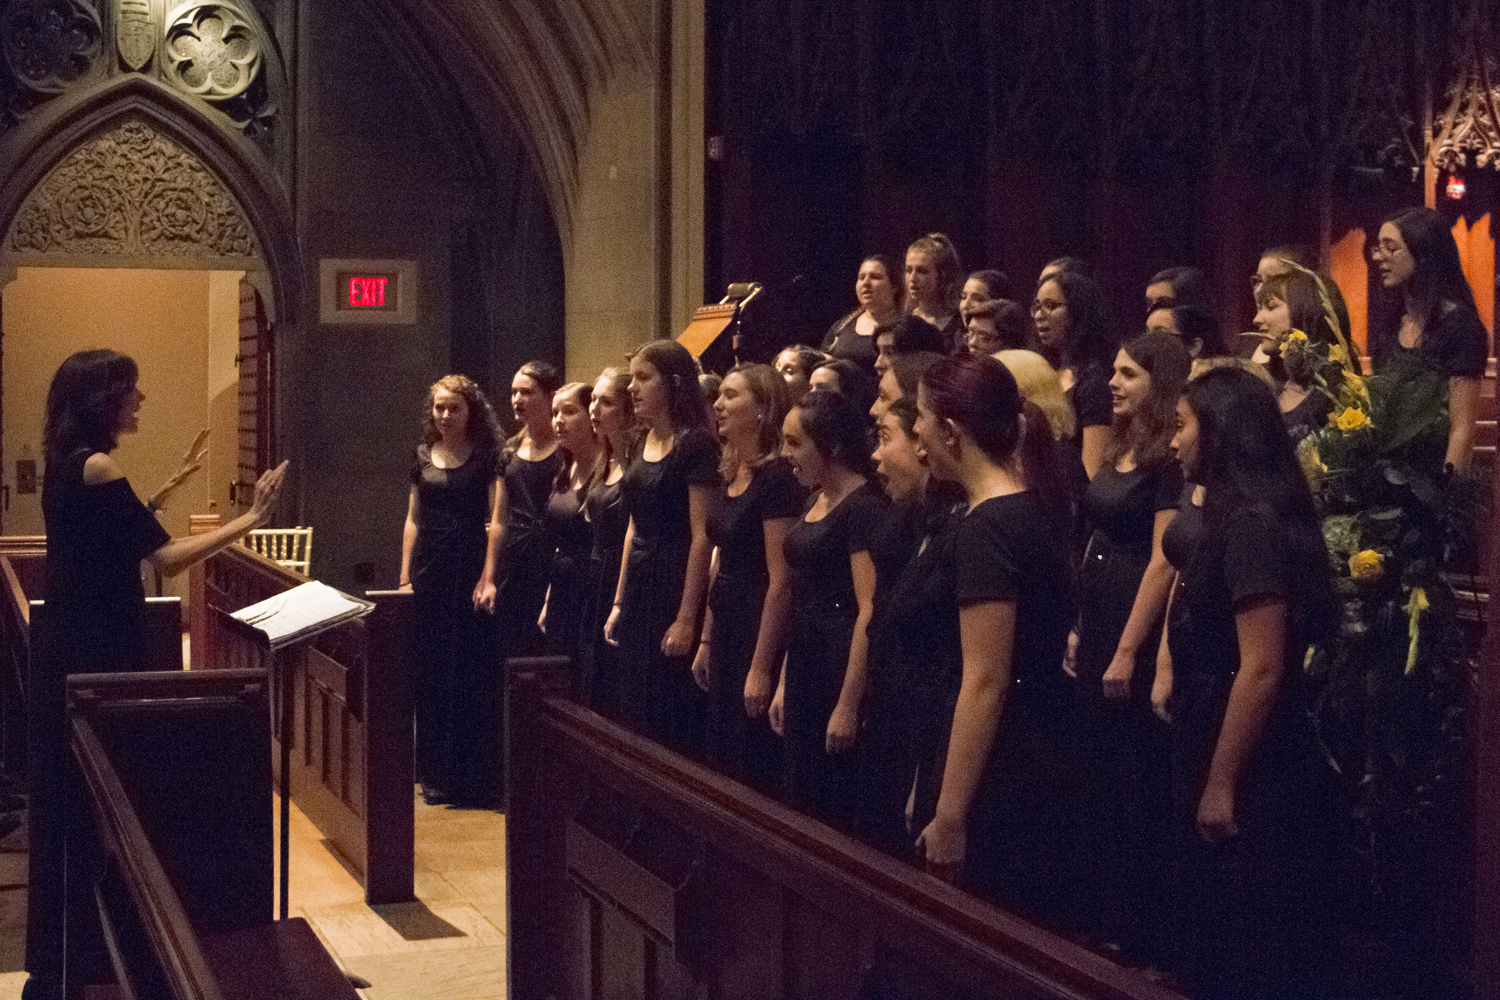 The University of Pittsburgh Symphony Orchestra, the PalPITTations and the Women's Choral Ensemble performed at the Pitt Alumni Association at Heinz Memorial Chapel Tuesday evening.